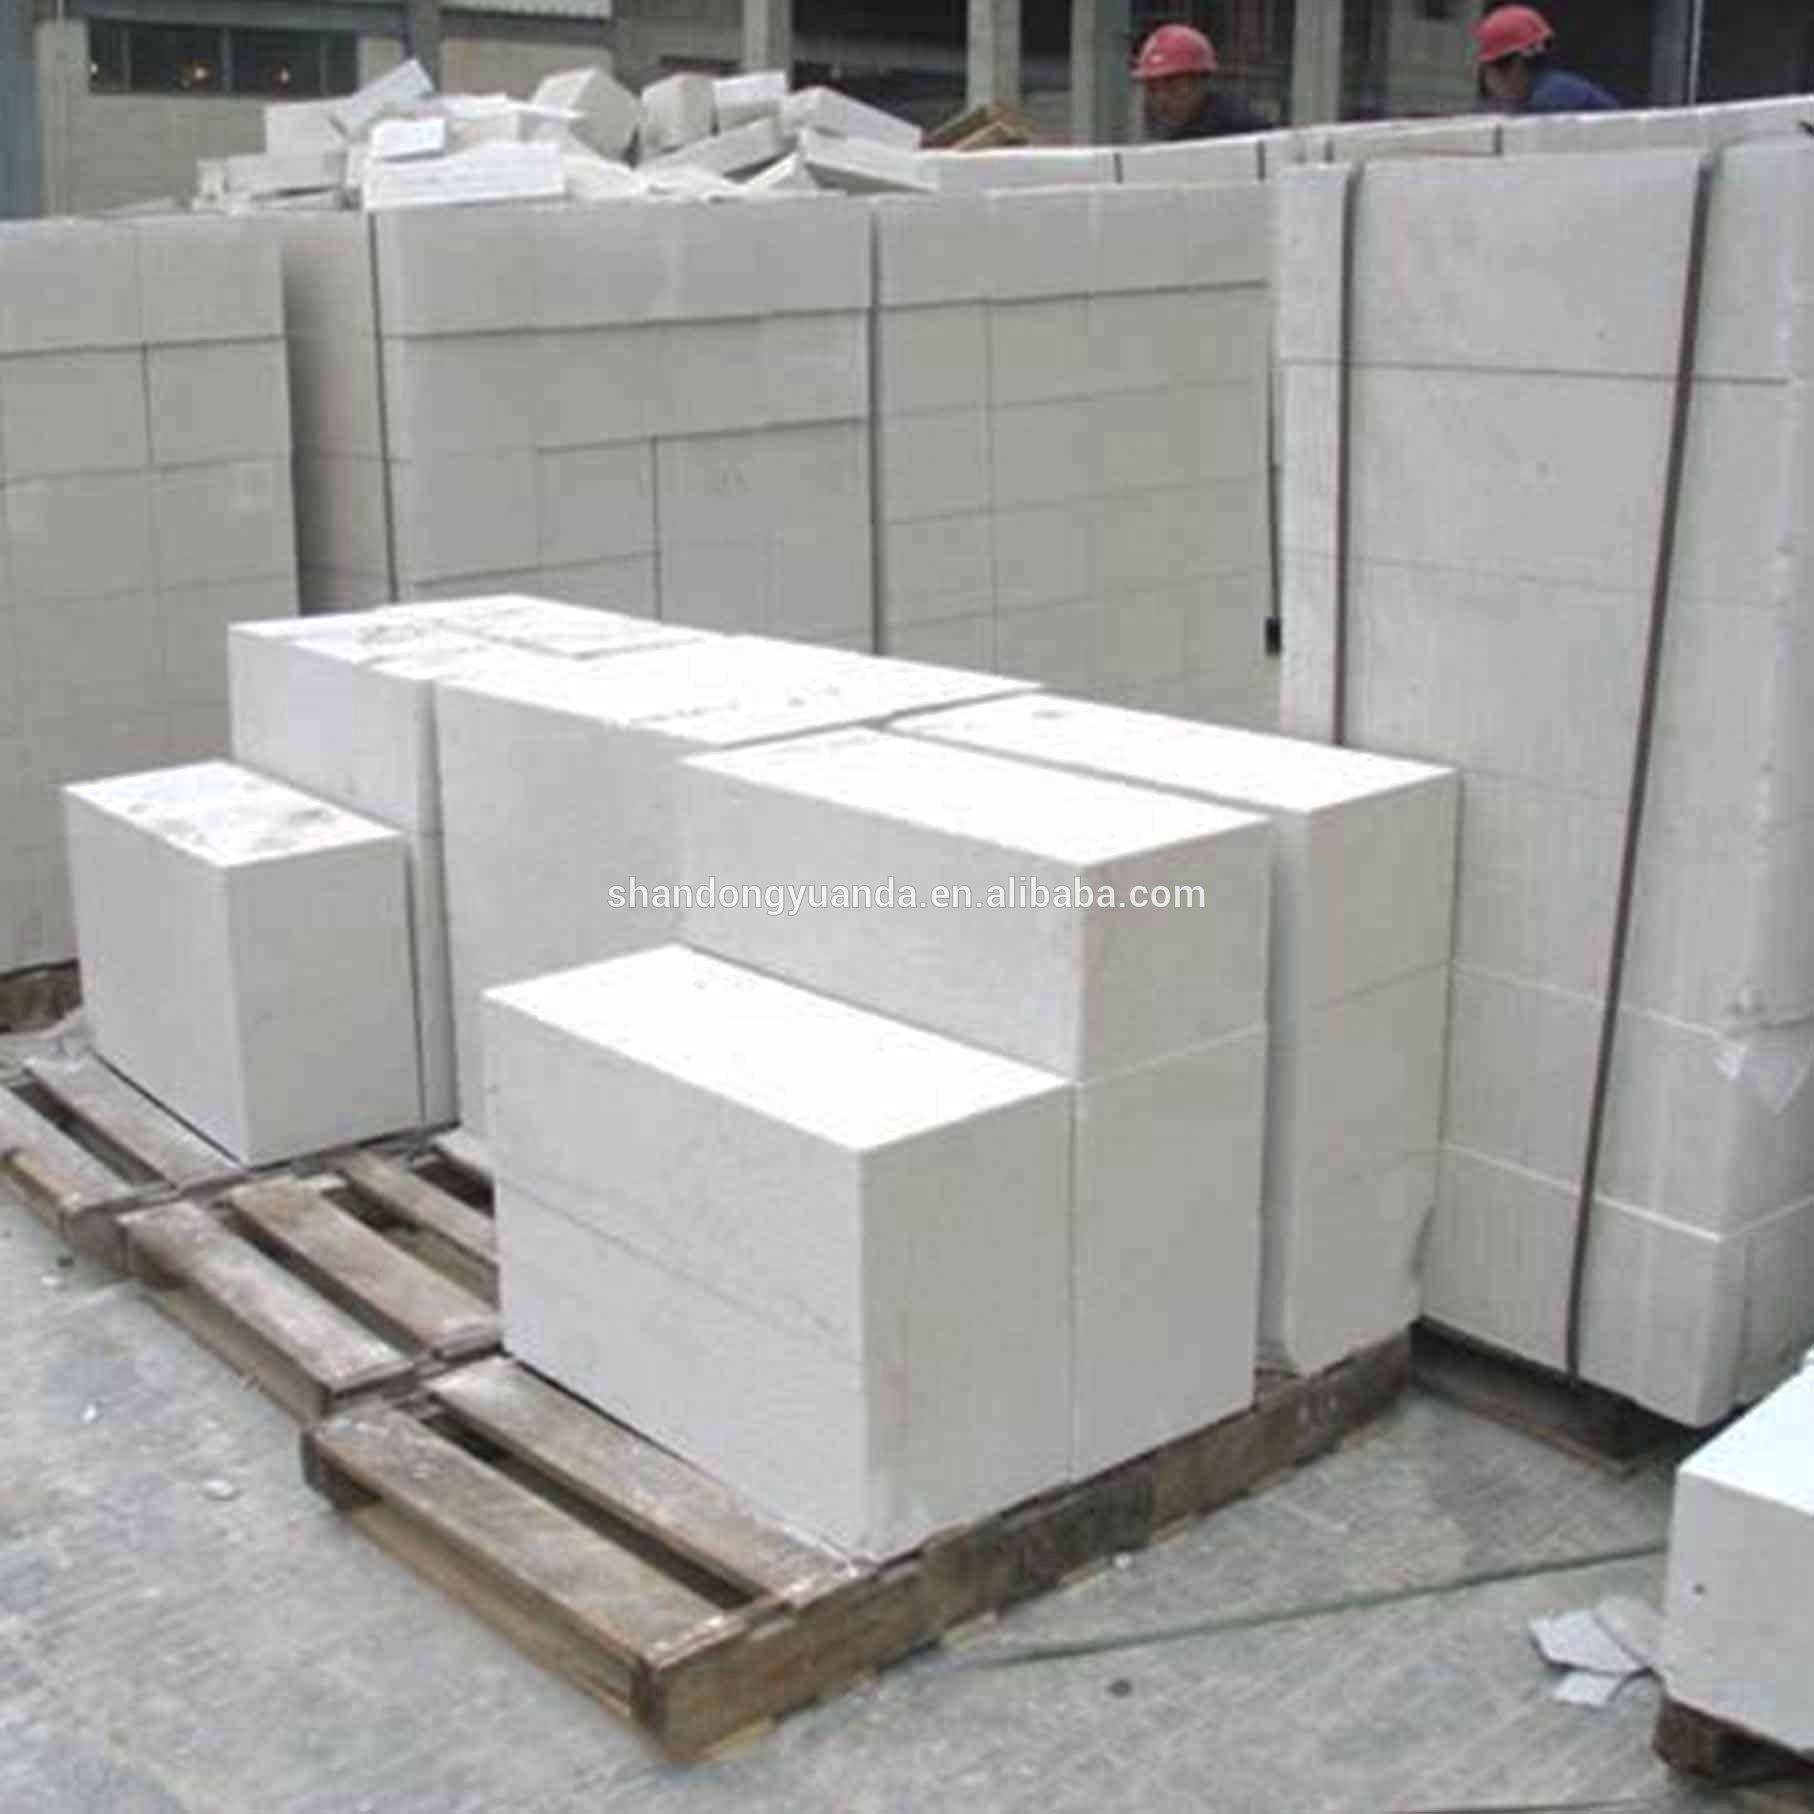 Lightweight AAC/ALC Ytong Blocks